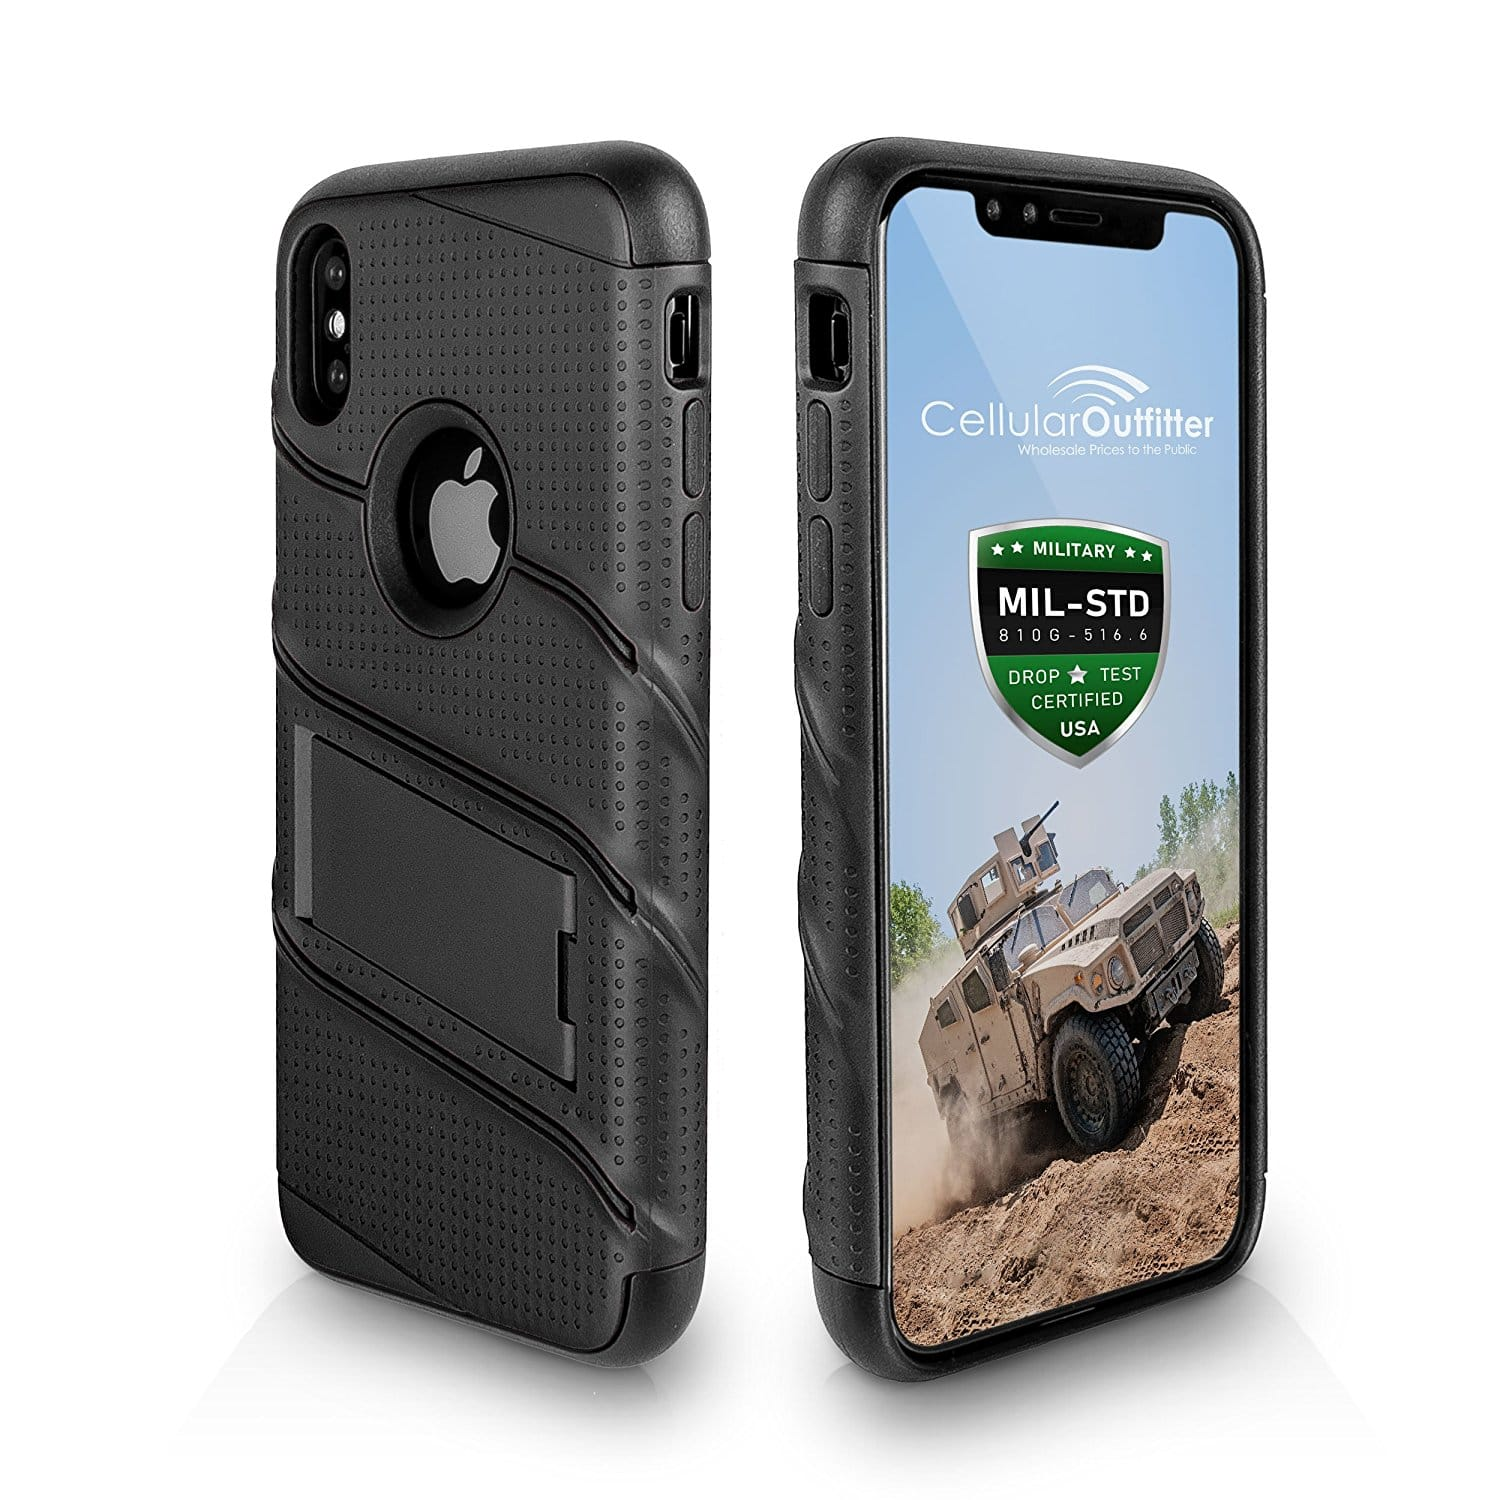 san francisco a1f61 ad488 Cellular Outfitter Cases for iPhone X, 8 / 8 Plus, Galaxy Note 8, S8 ...